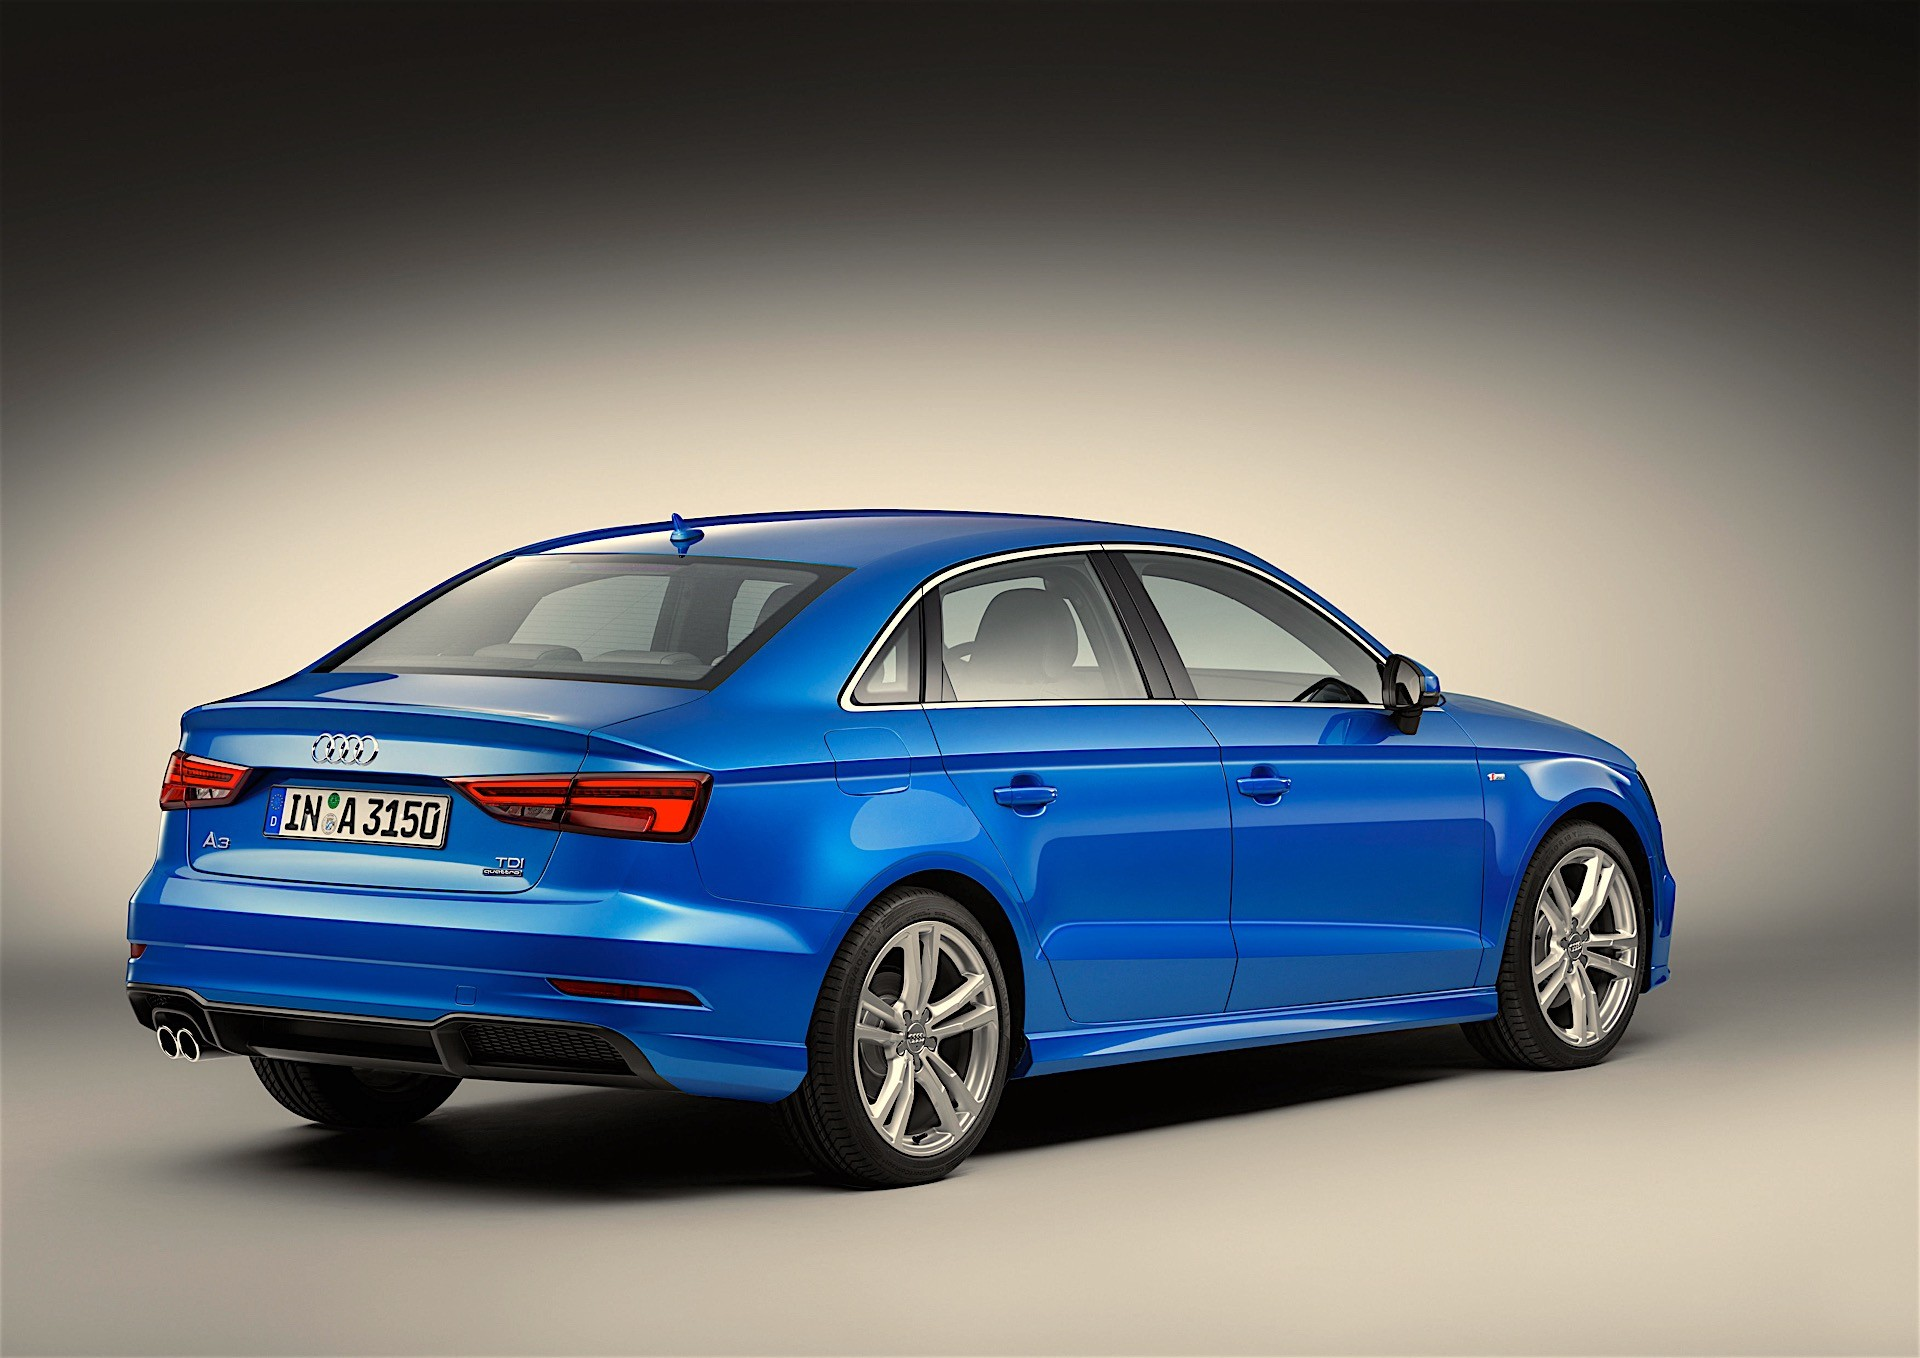 2017 Audi A3 Facelift Configurator Launched In Germany, S3